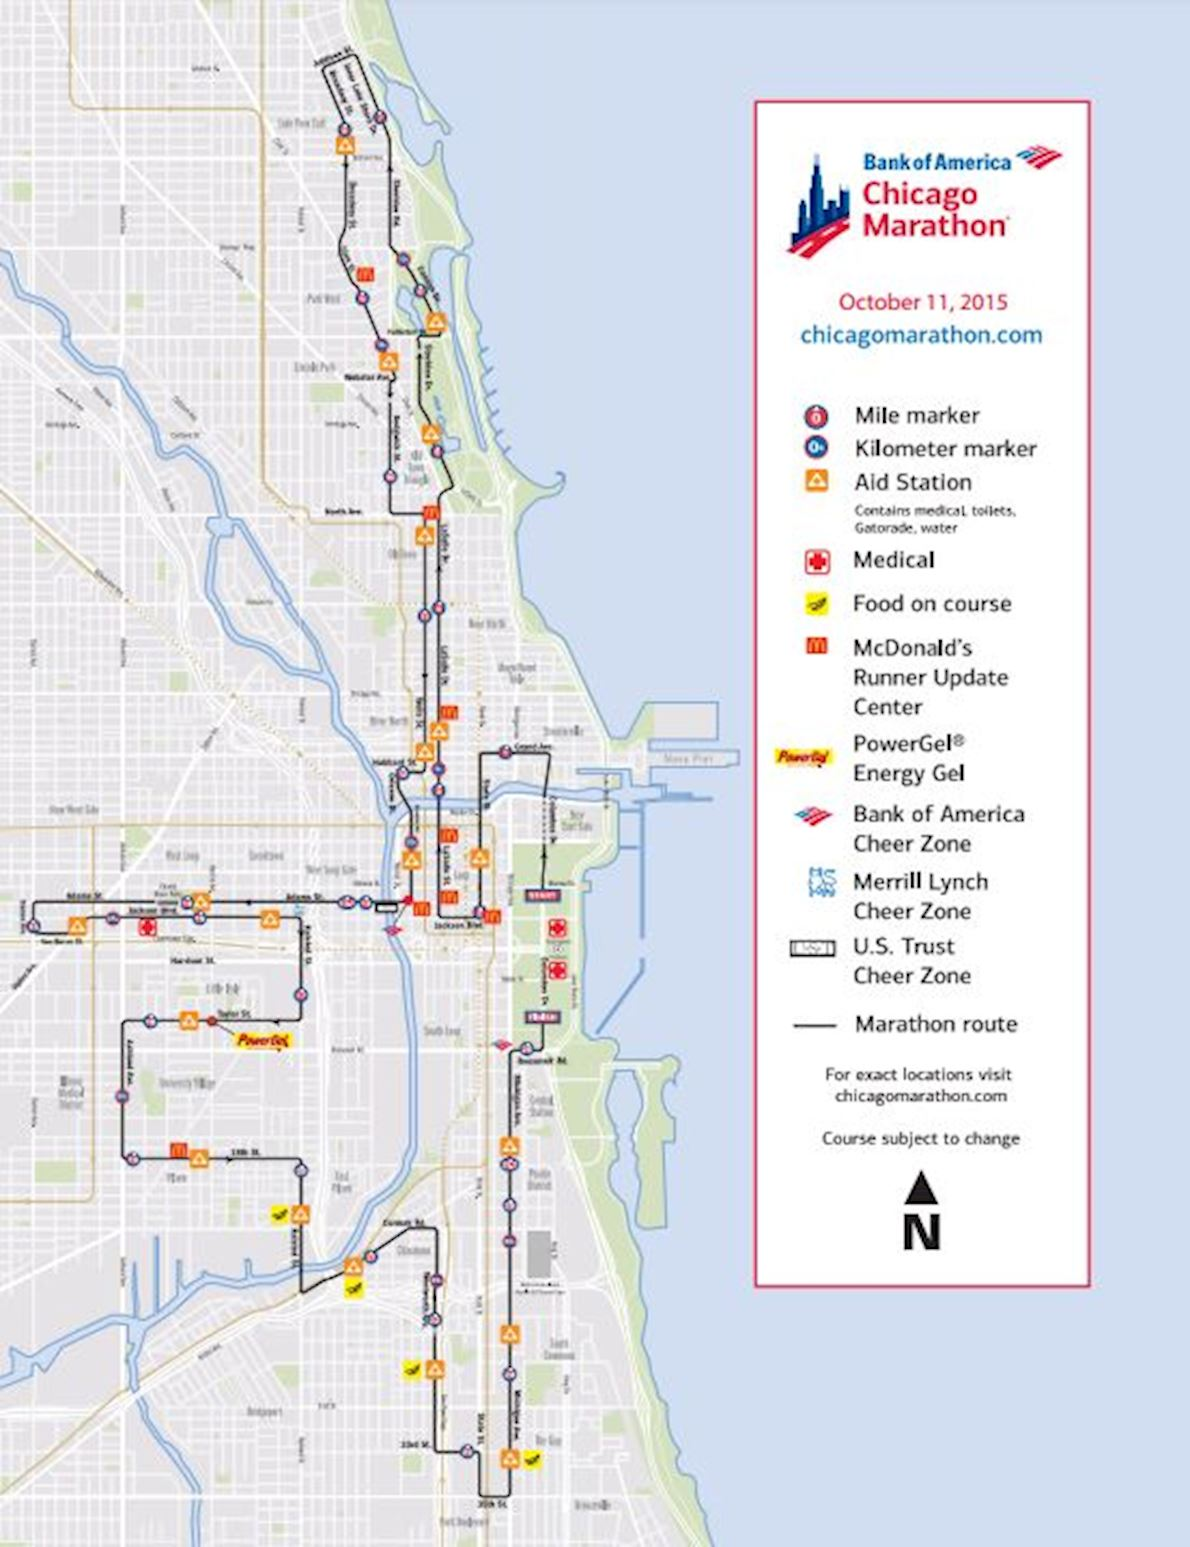 Chicago Marathon 路线图